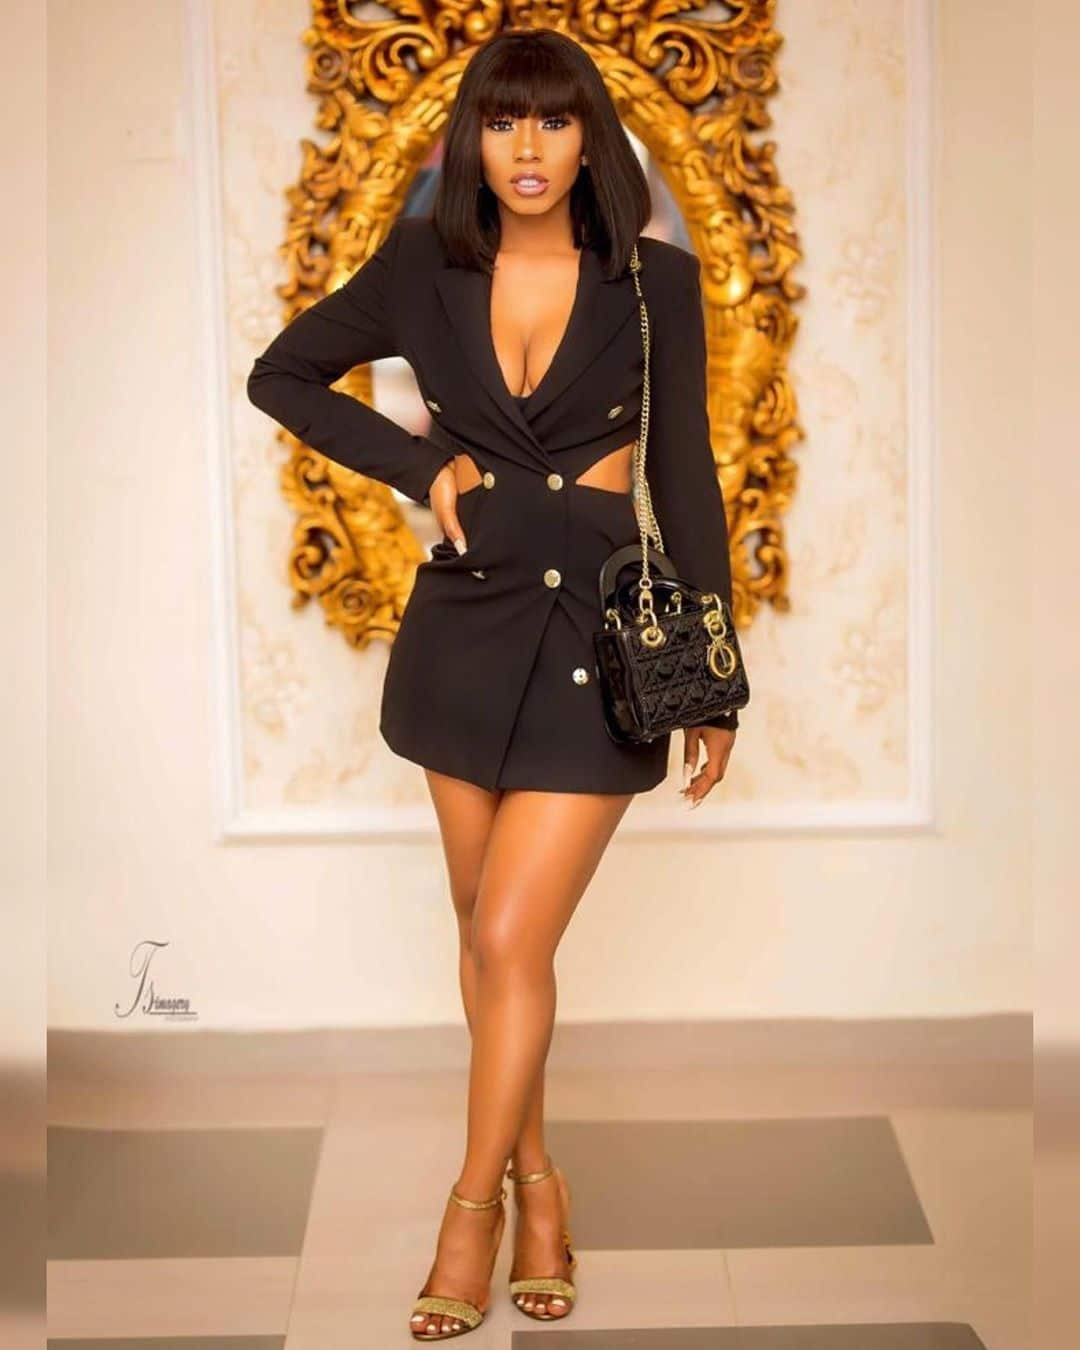 mercy-eke-how-to-style-a-black-dress-and-win